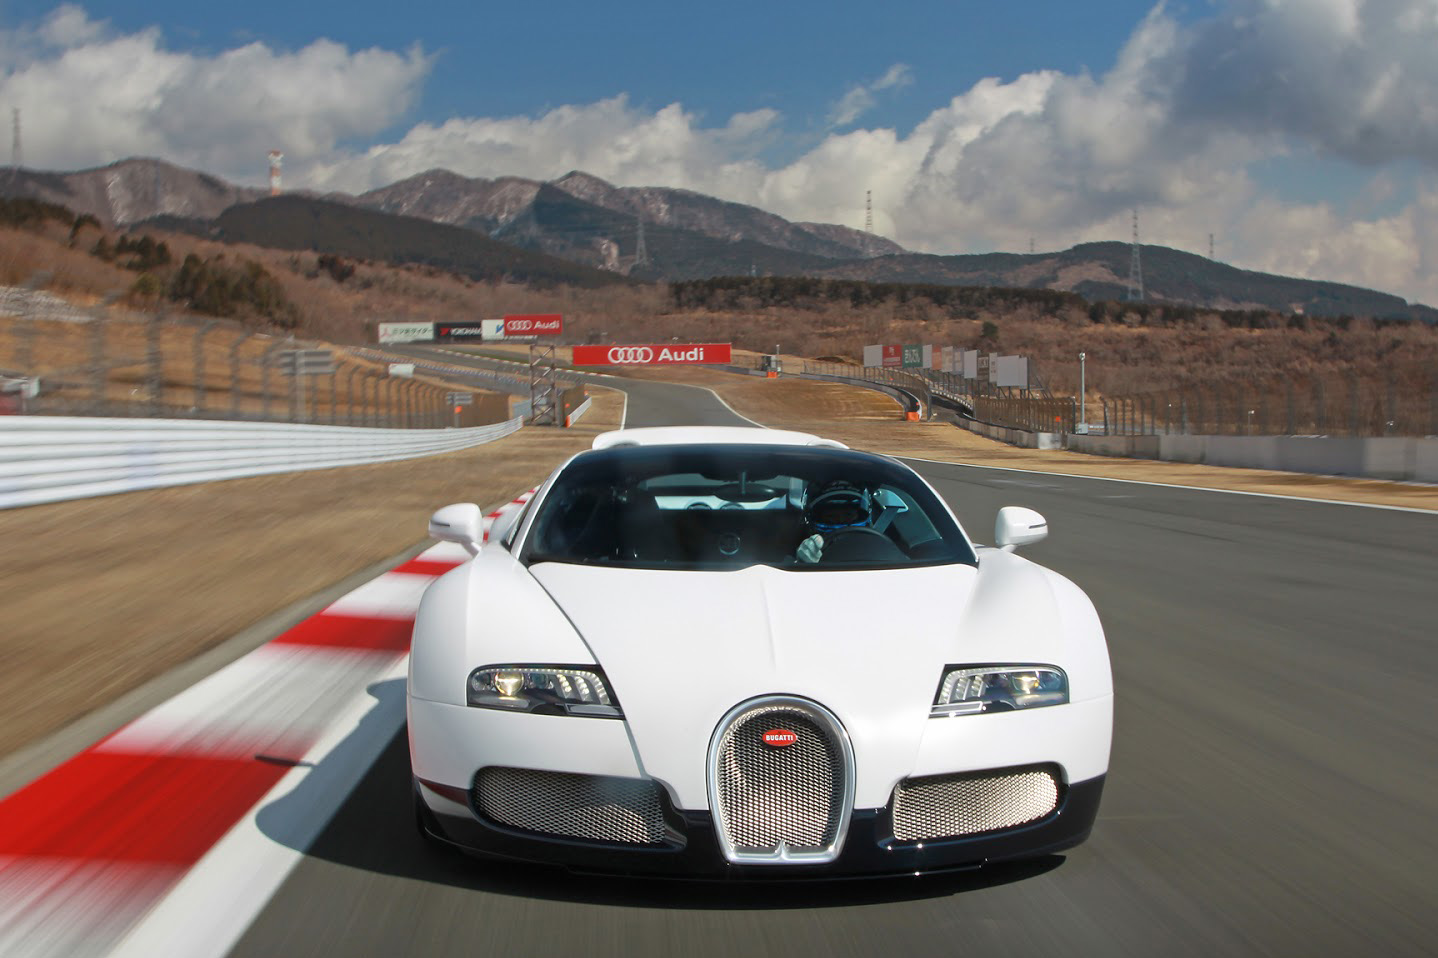 Video: Seeing the Bugatti Veyron being hammered around a race-track from a drivers POV is awesome!